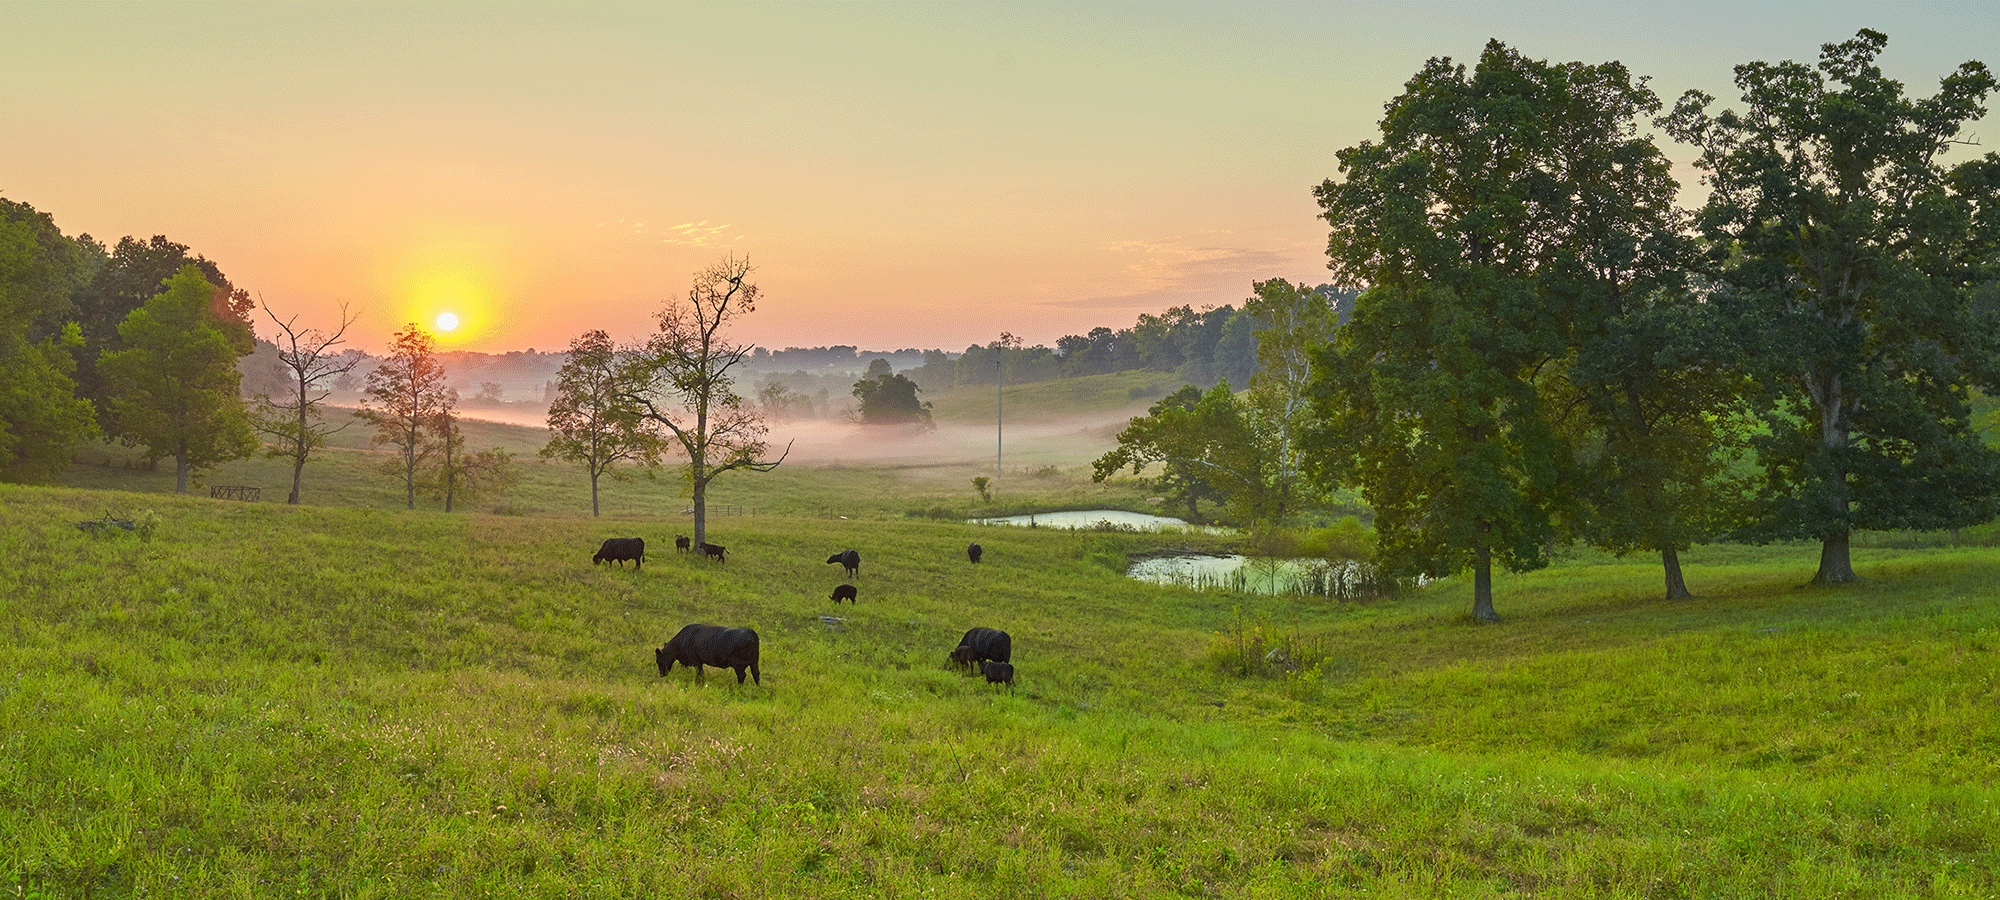 Cows grazing in a green pasture at sunrise